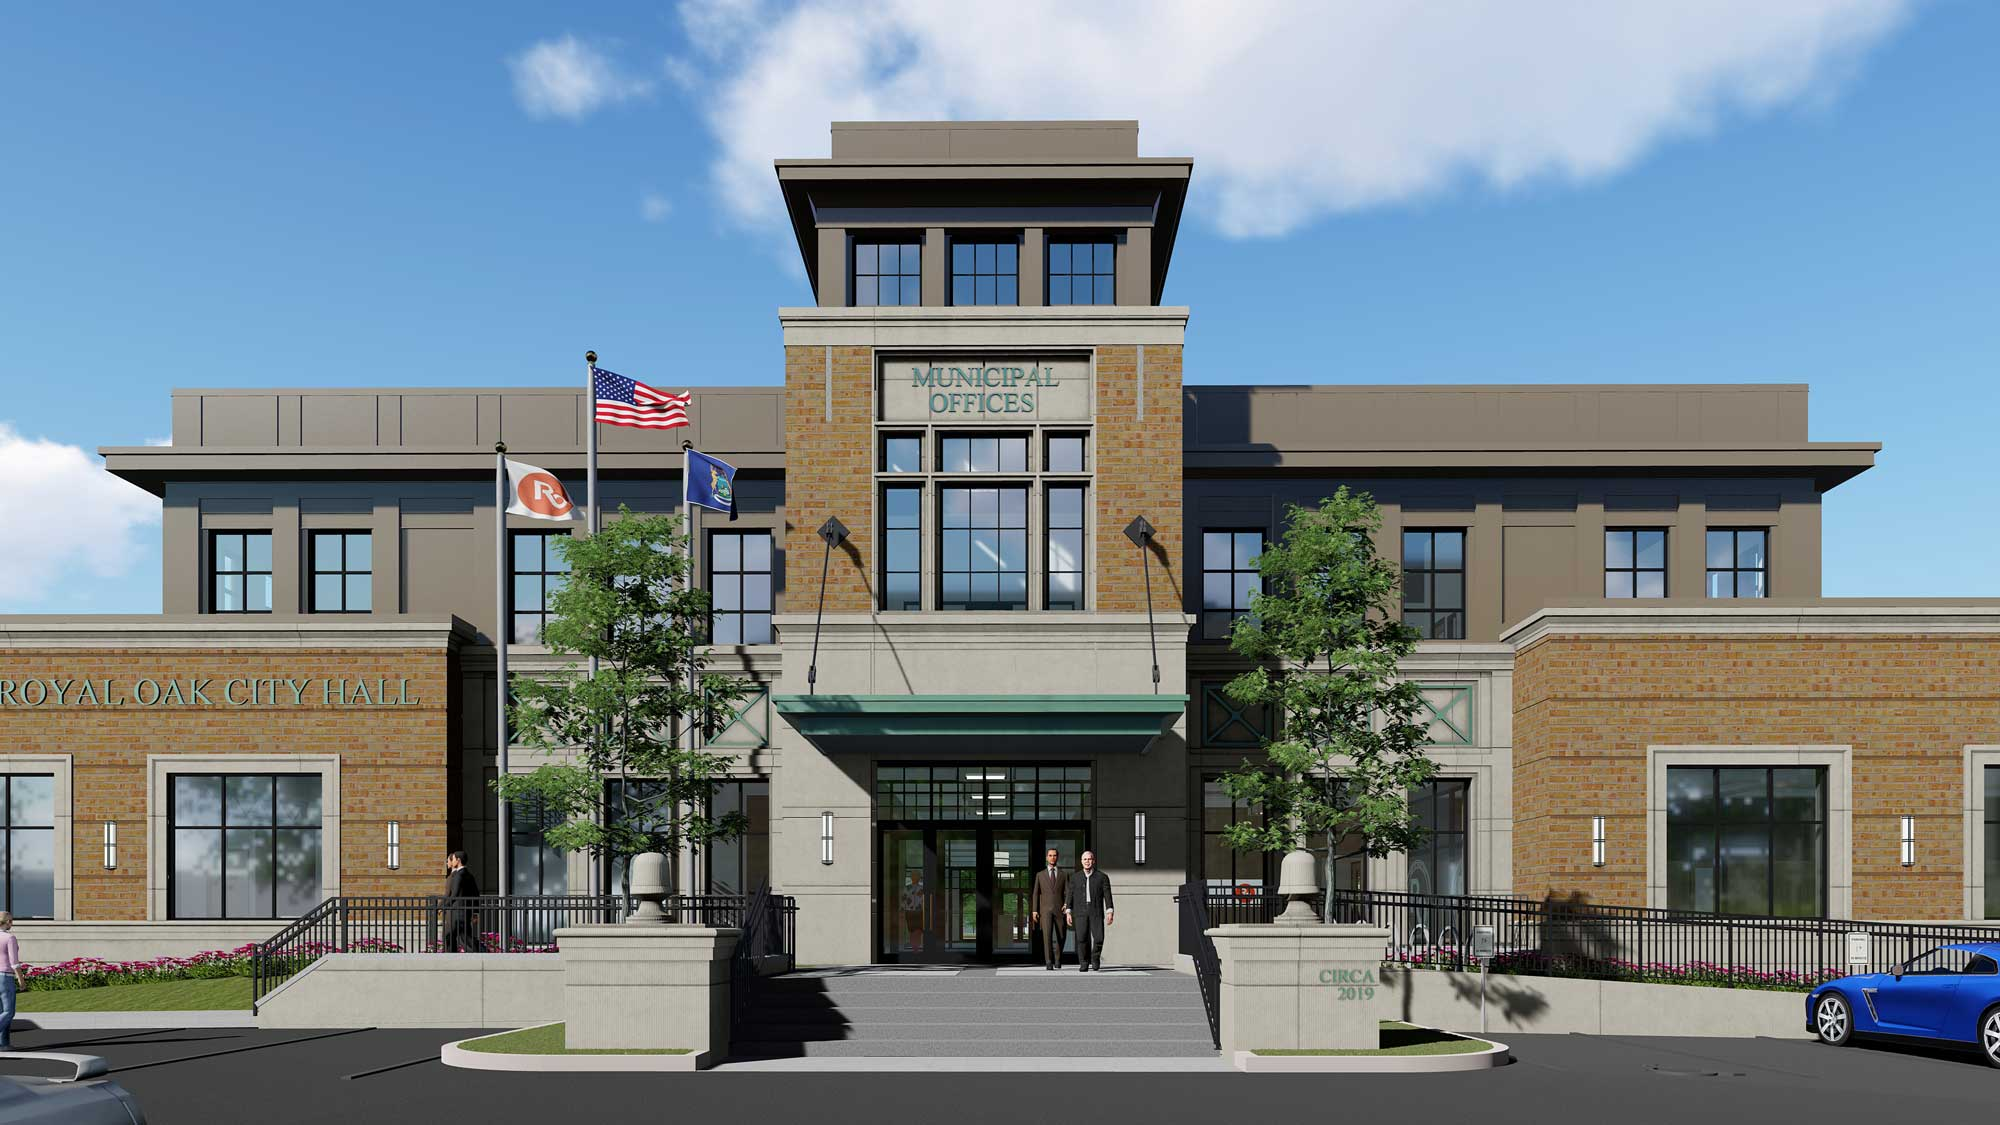 Royal Oak City Hall offices exterior rendering